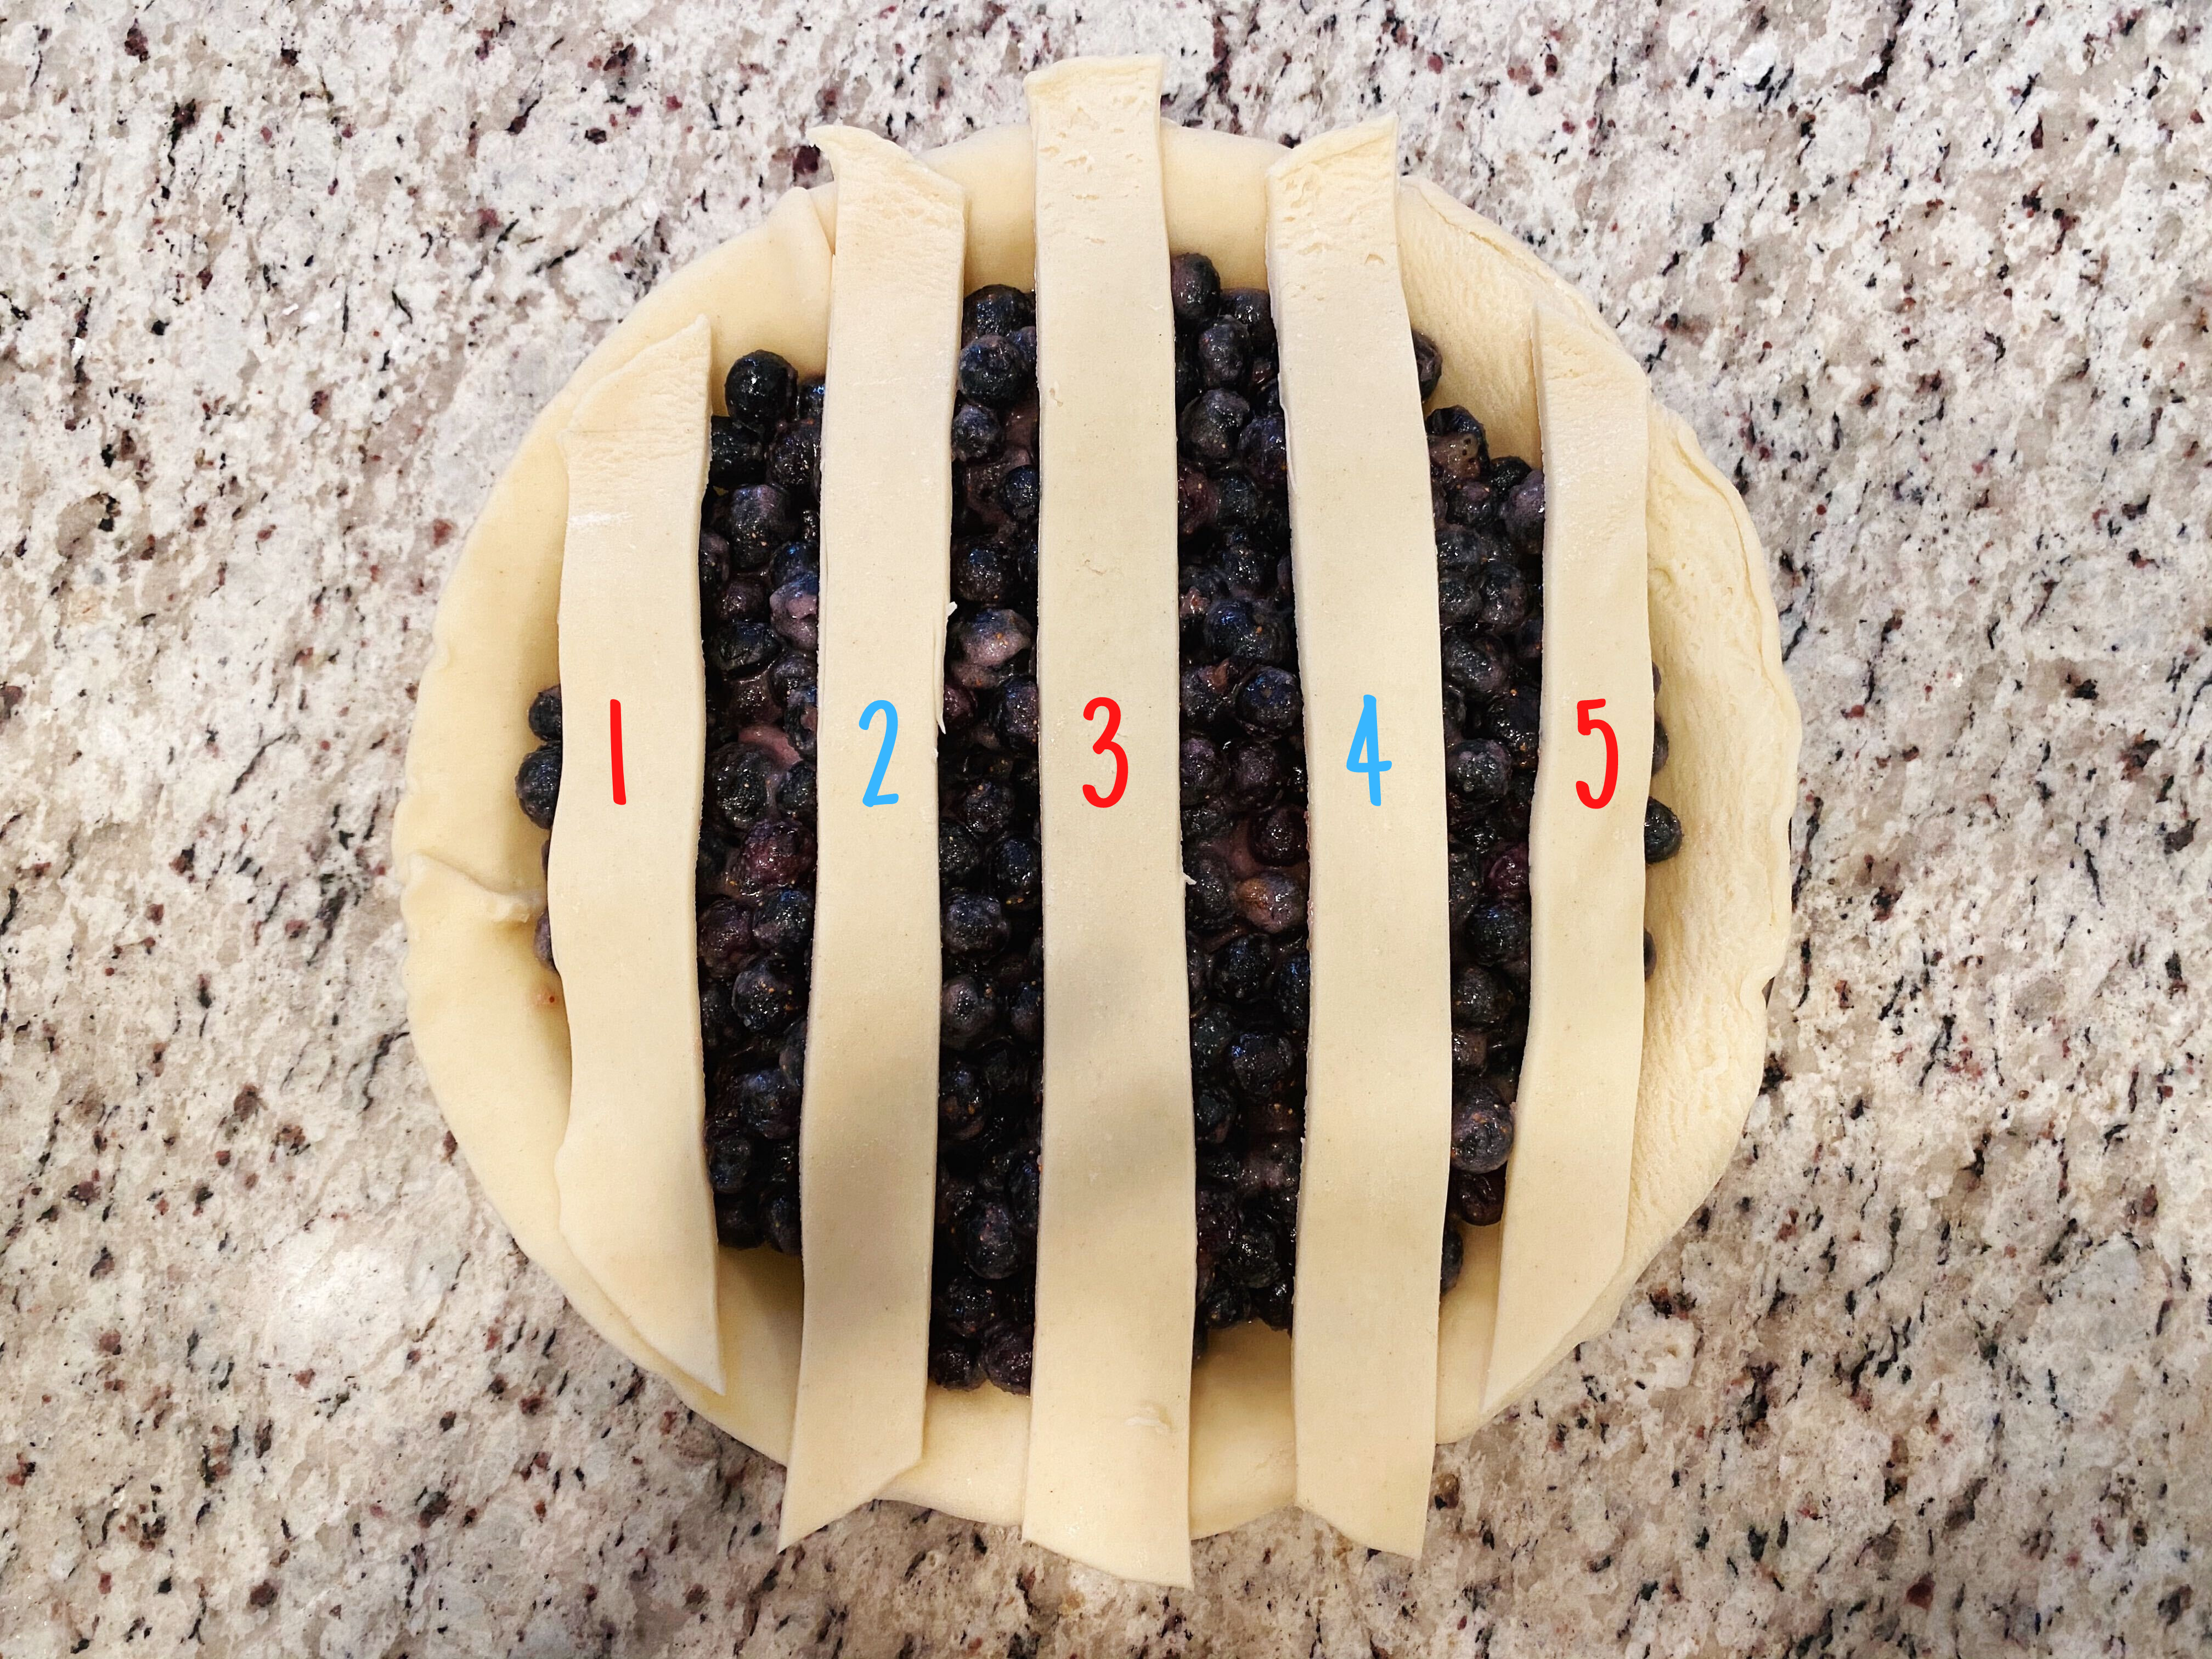 Lattice Pie Crust Step 1